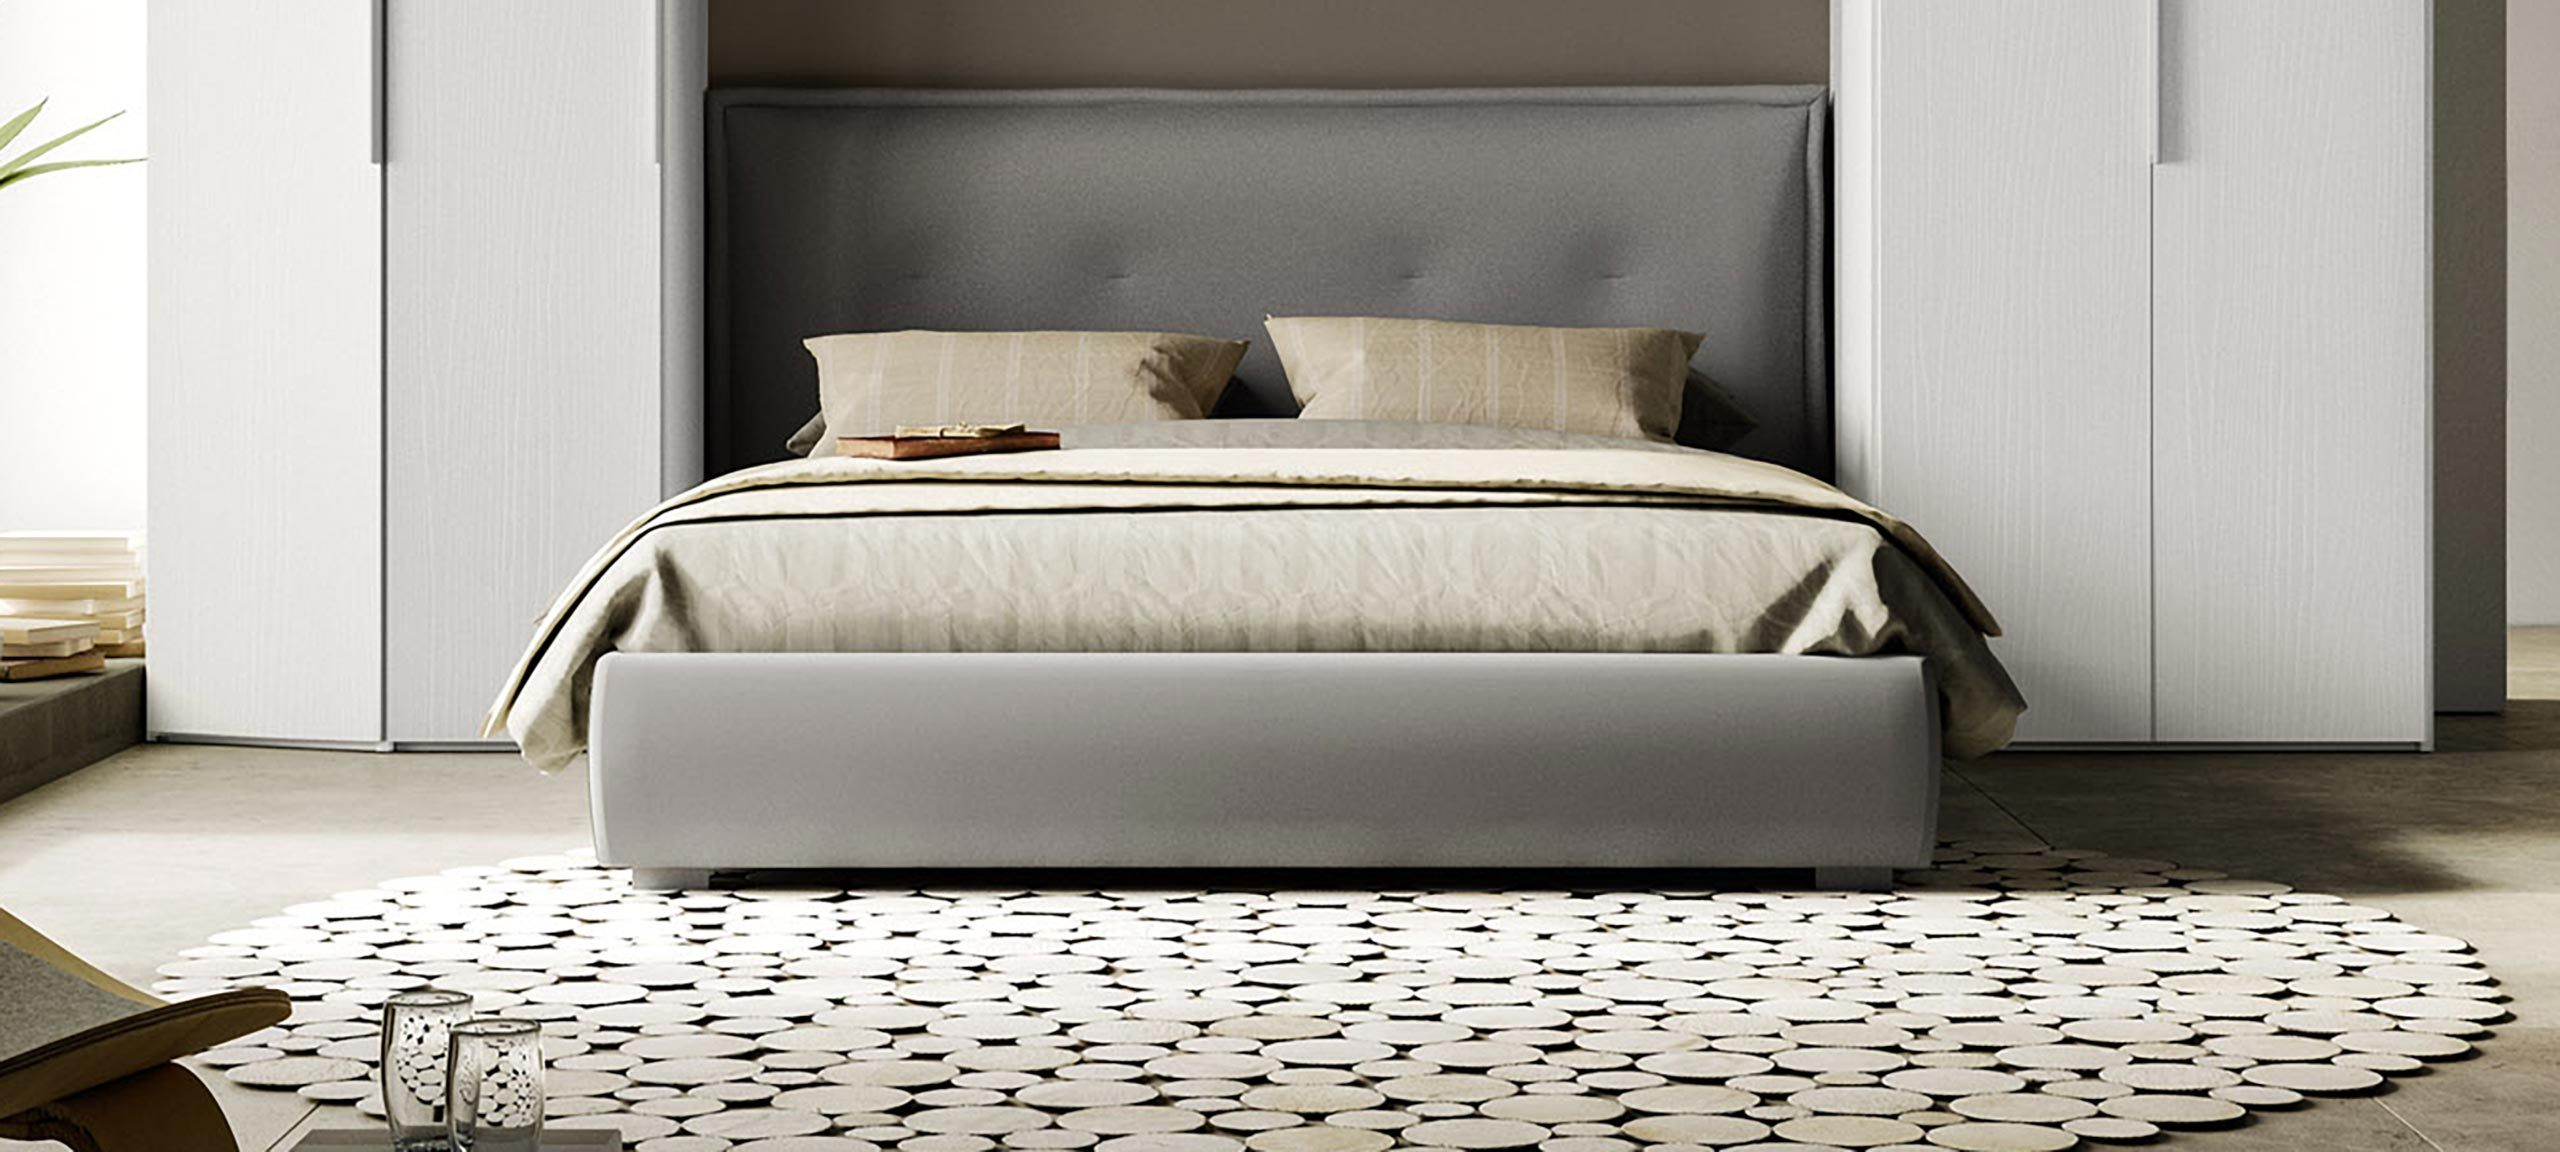 fabric-lined double bed with container 5